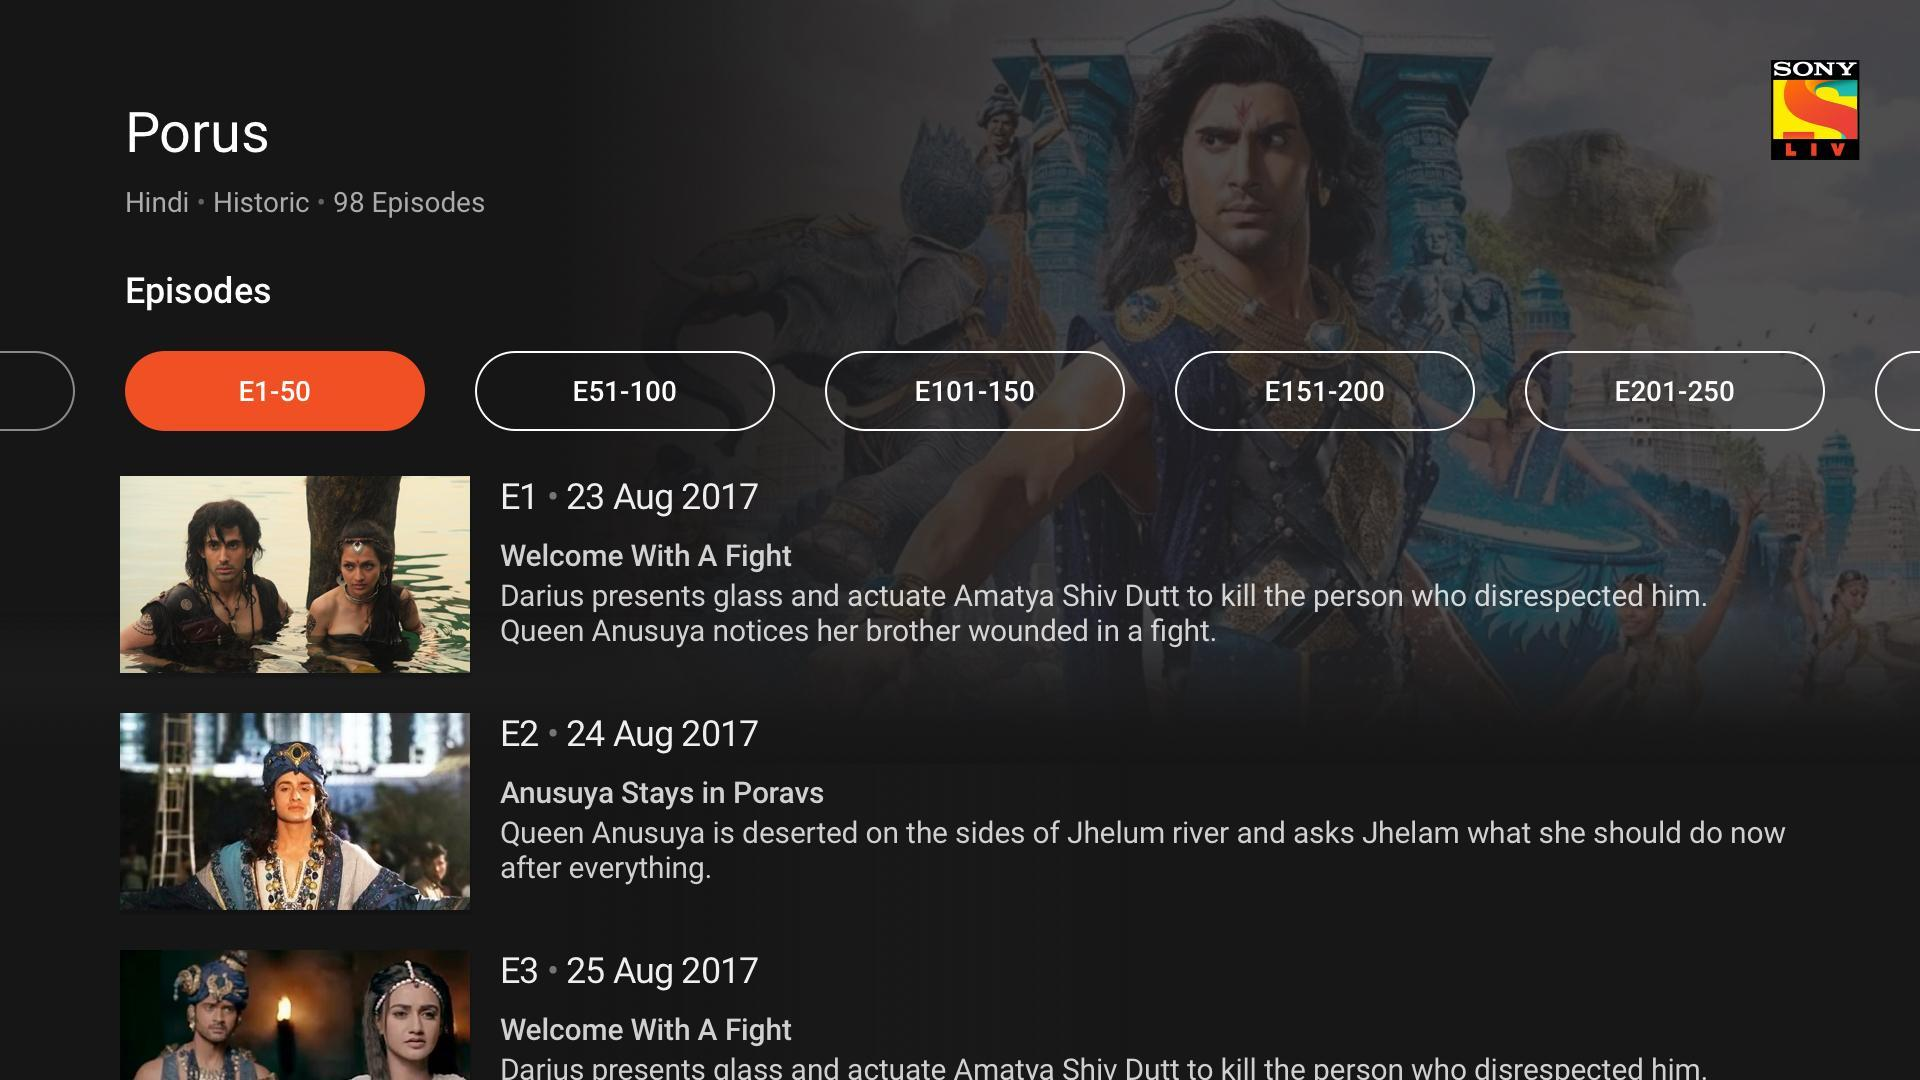 SonyLIV - TV Shows, Movies & Live Sports Online TV for Android - APK